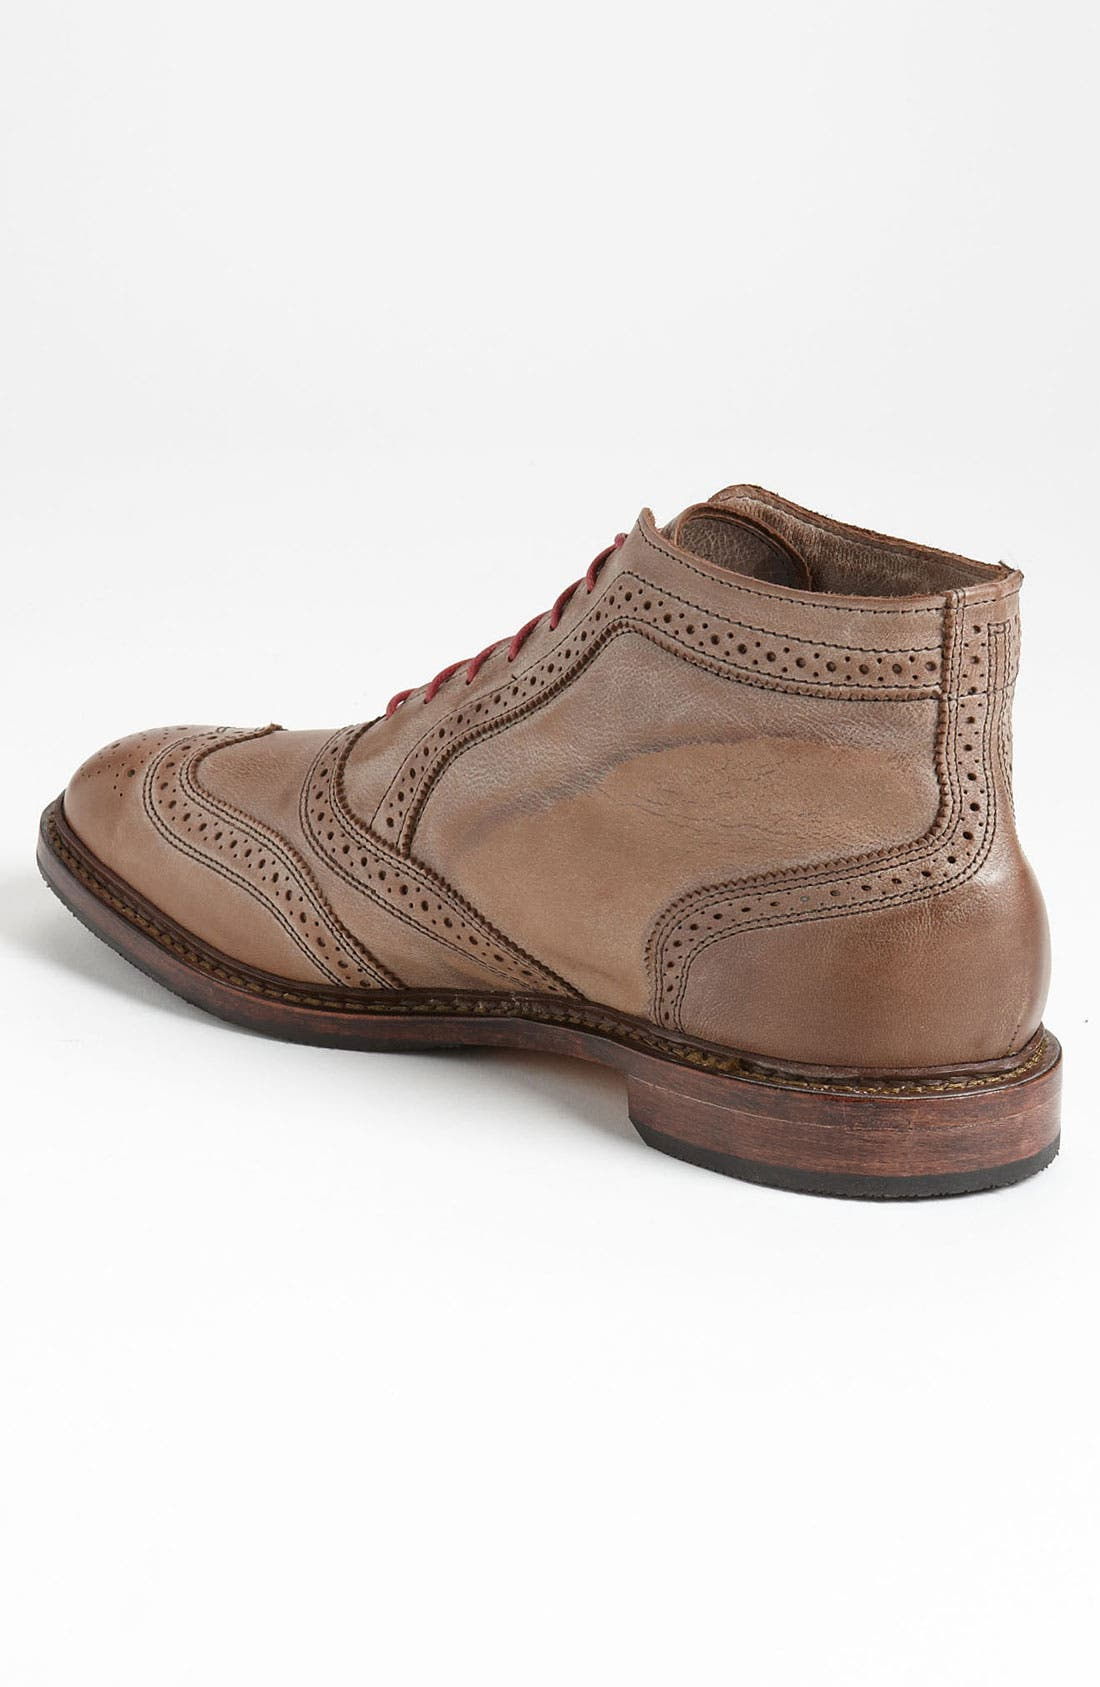 ALLEN EDMONDS,                             'Cronmok' Wingtip Boot,                             Alternate thumbnail 2, color,                             200